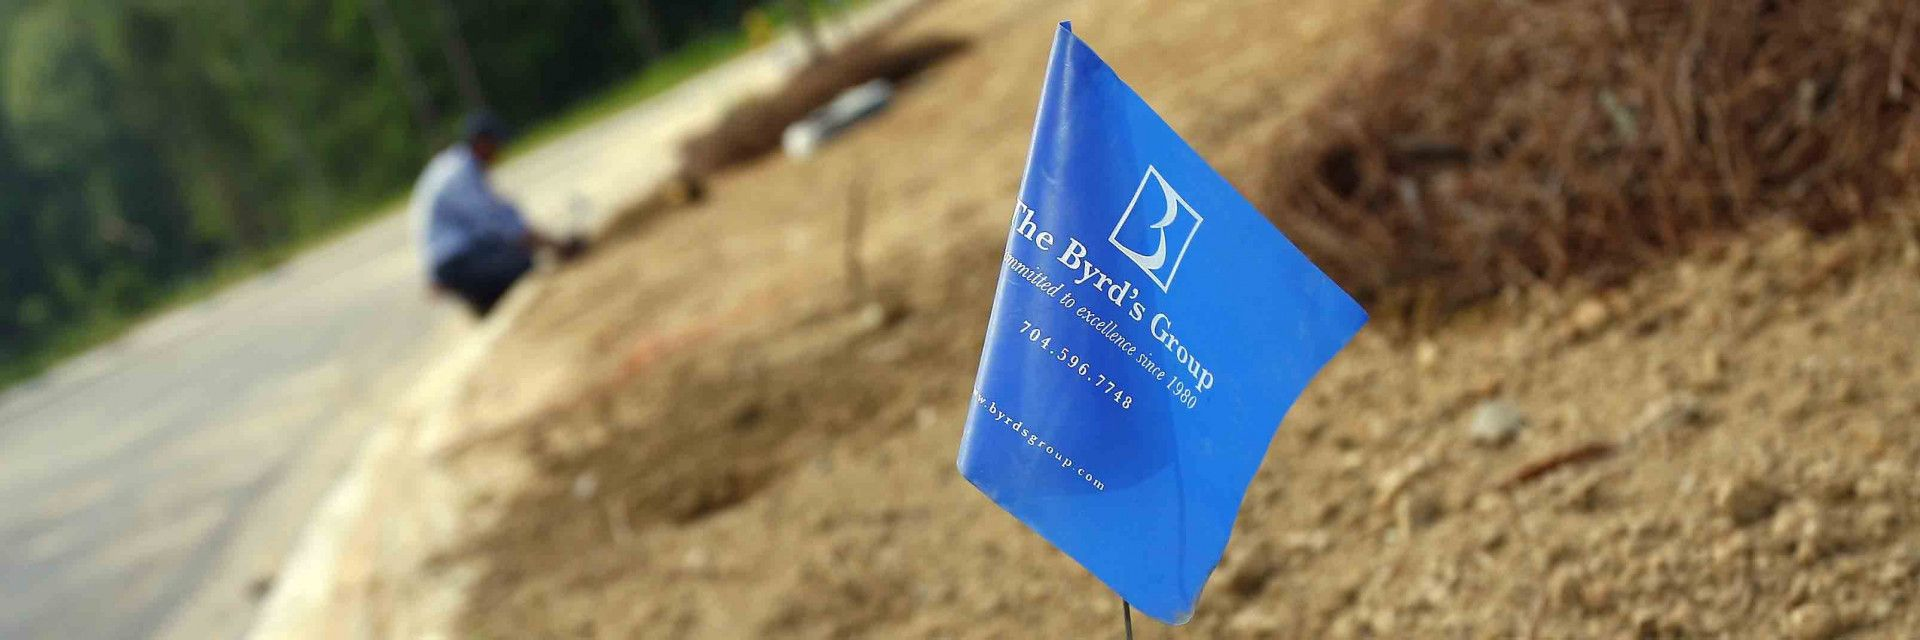 blue byrds group work flag in dirt